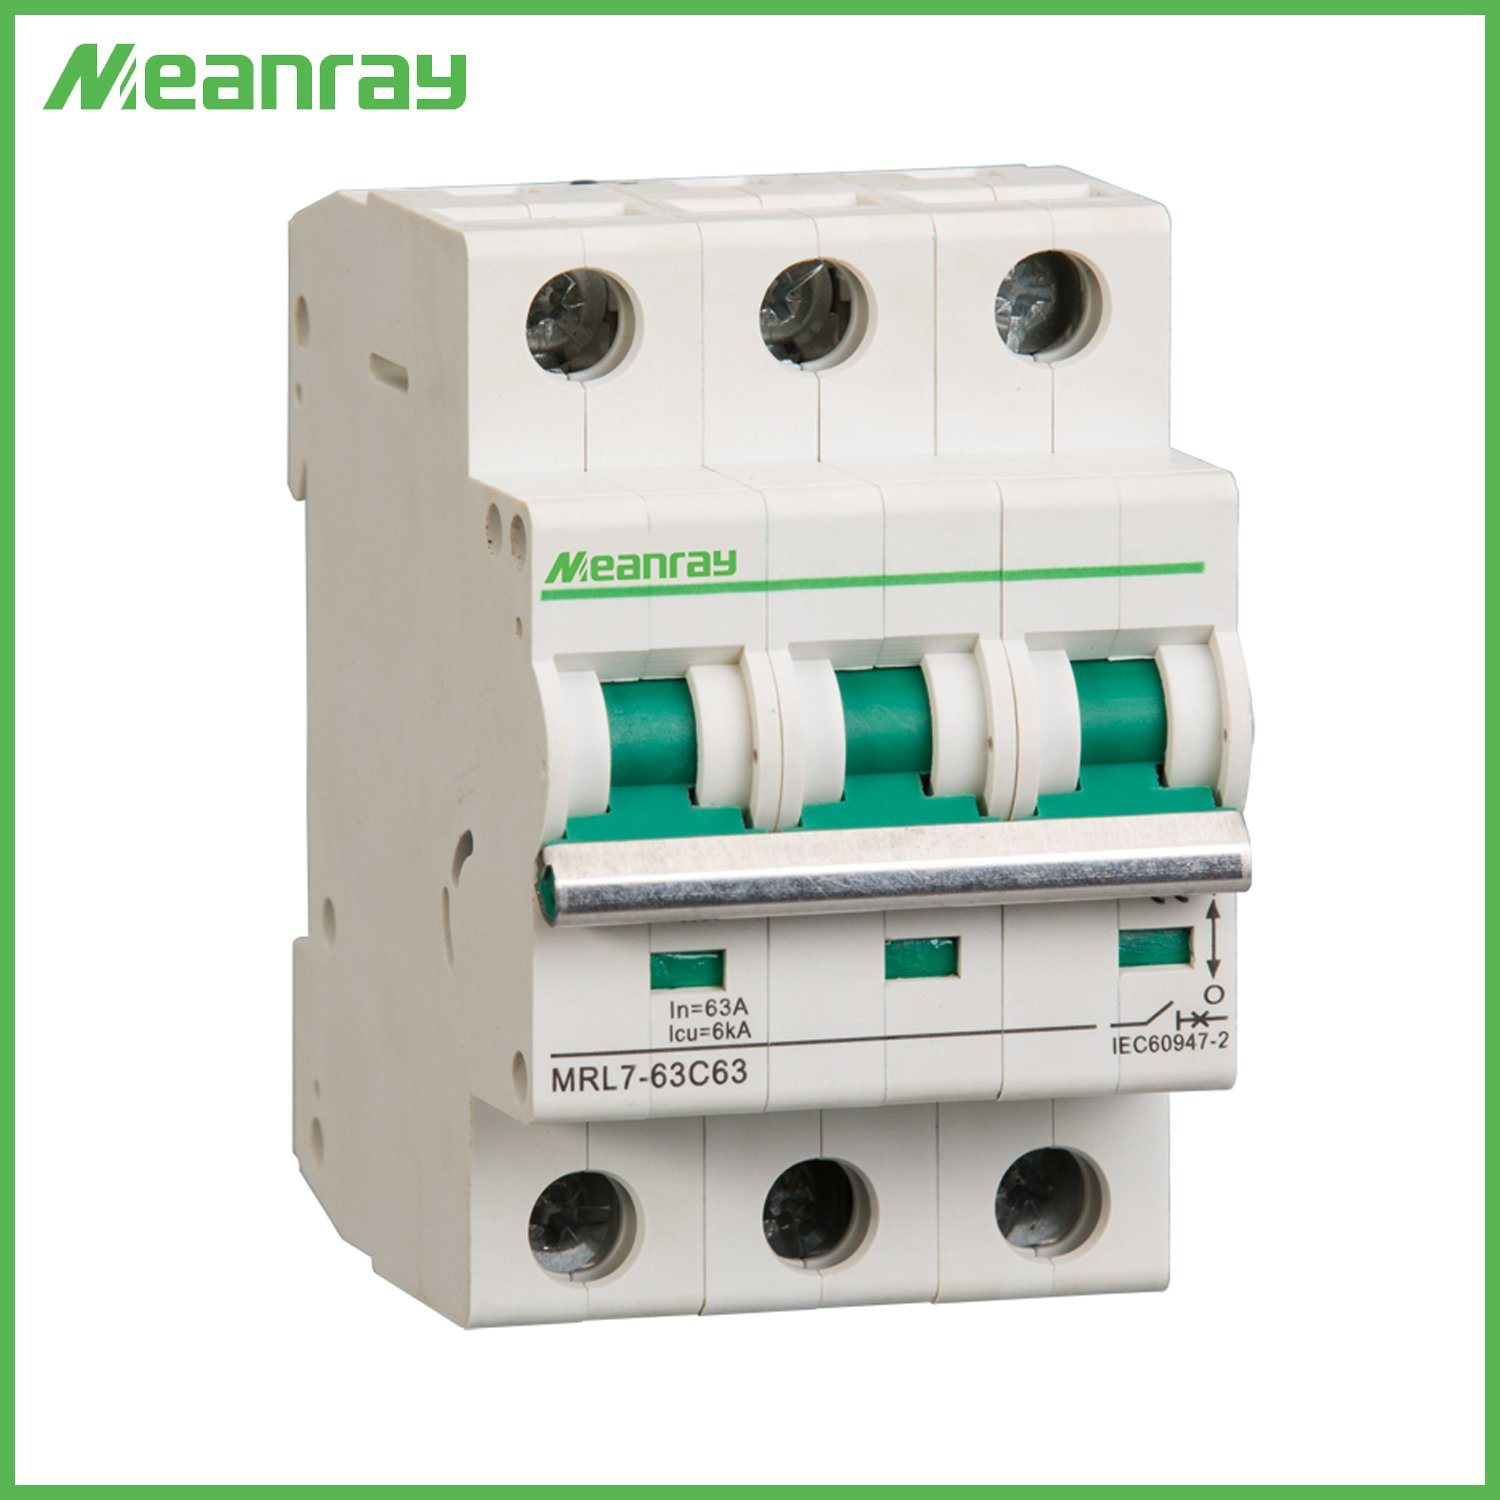 Wholesale Electrical Circuit Breaker Buy Reliable Dz47 100a Miniature China Electronic And Digital Best Quality Iec60947 Mrl7 63 1p 2p 3p 4p 10a 16a 20a Type 12v 1000v Mcb Mini Dc